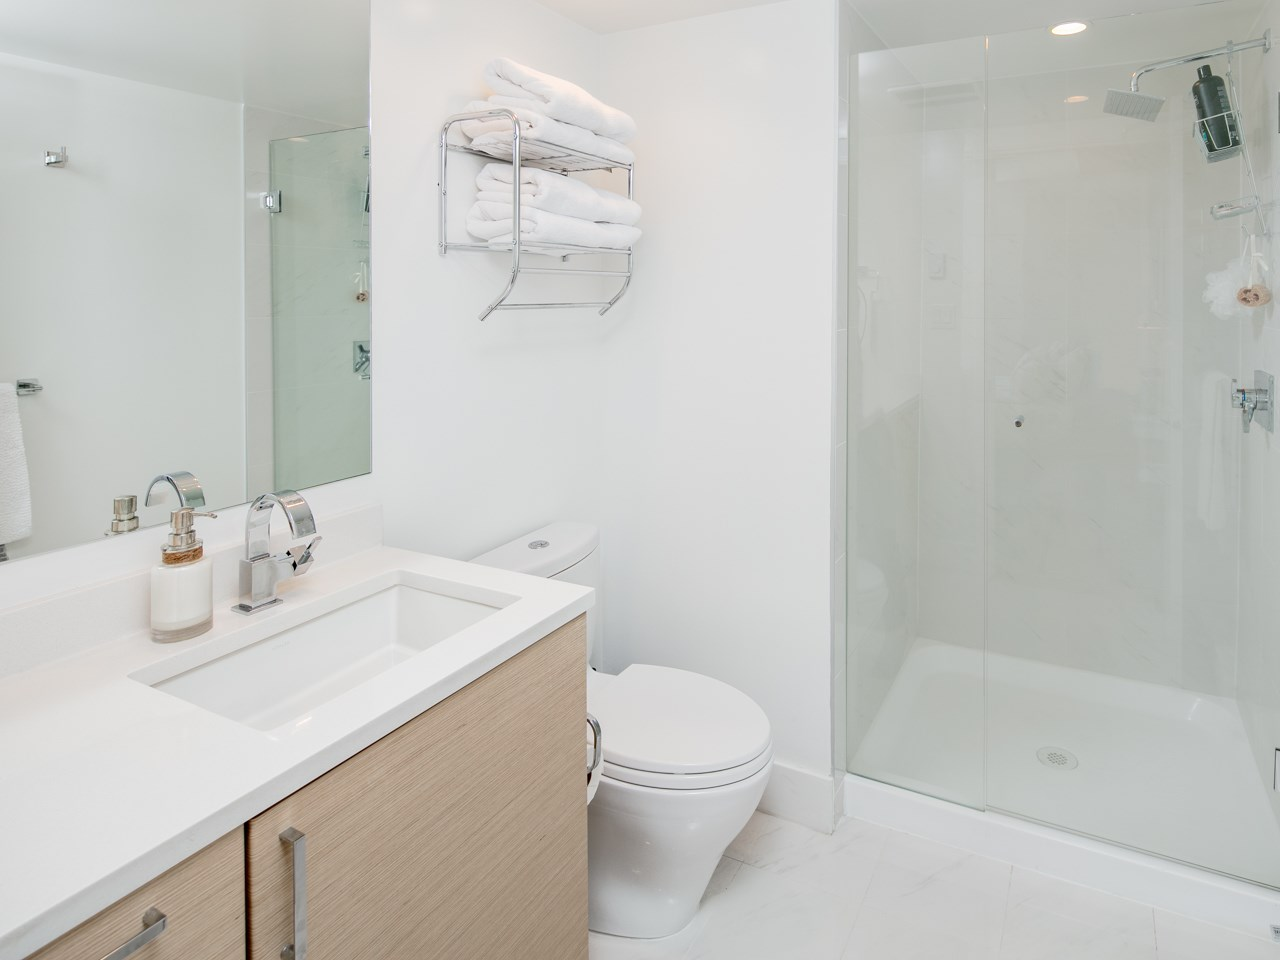 "Photo 11: 1678 MCLEAN Drive in Vancouver: Grandview VE Townhouse for sale in ""Granview Cascades"" (Vancouver East)  : MLS® # R2204906"